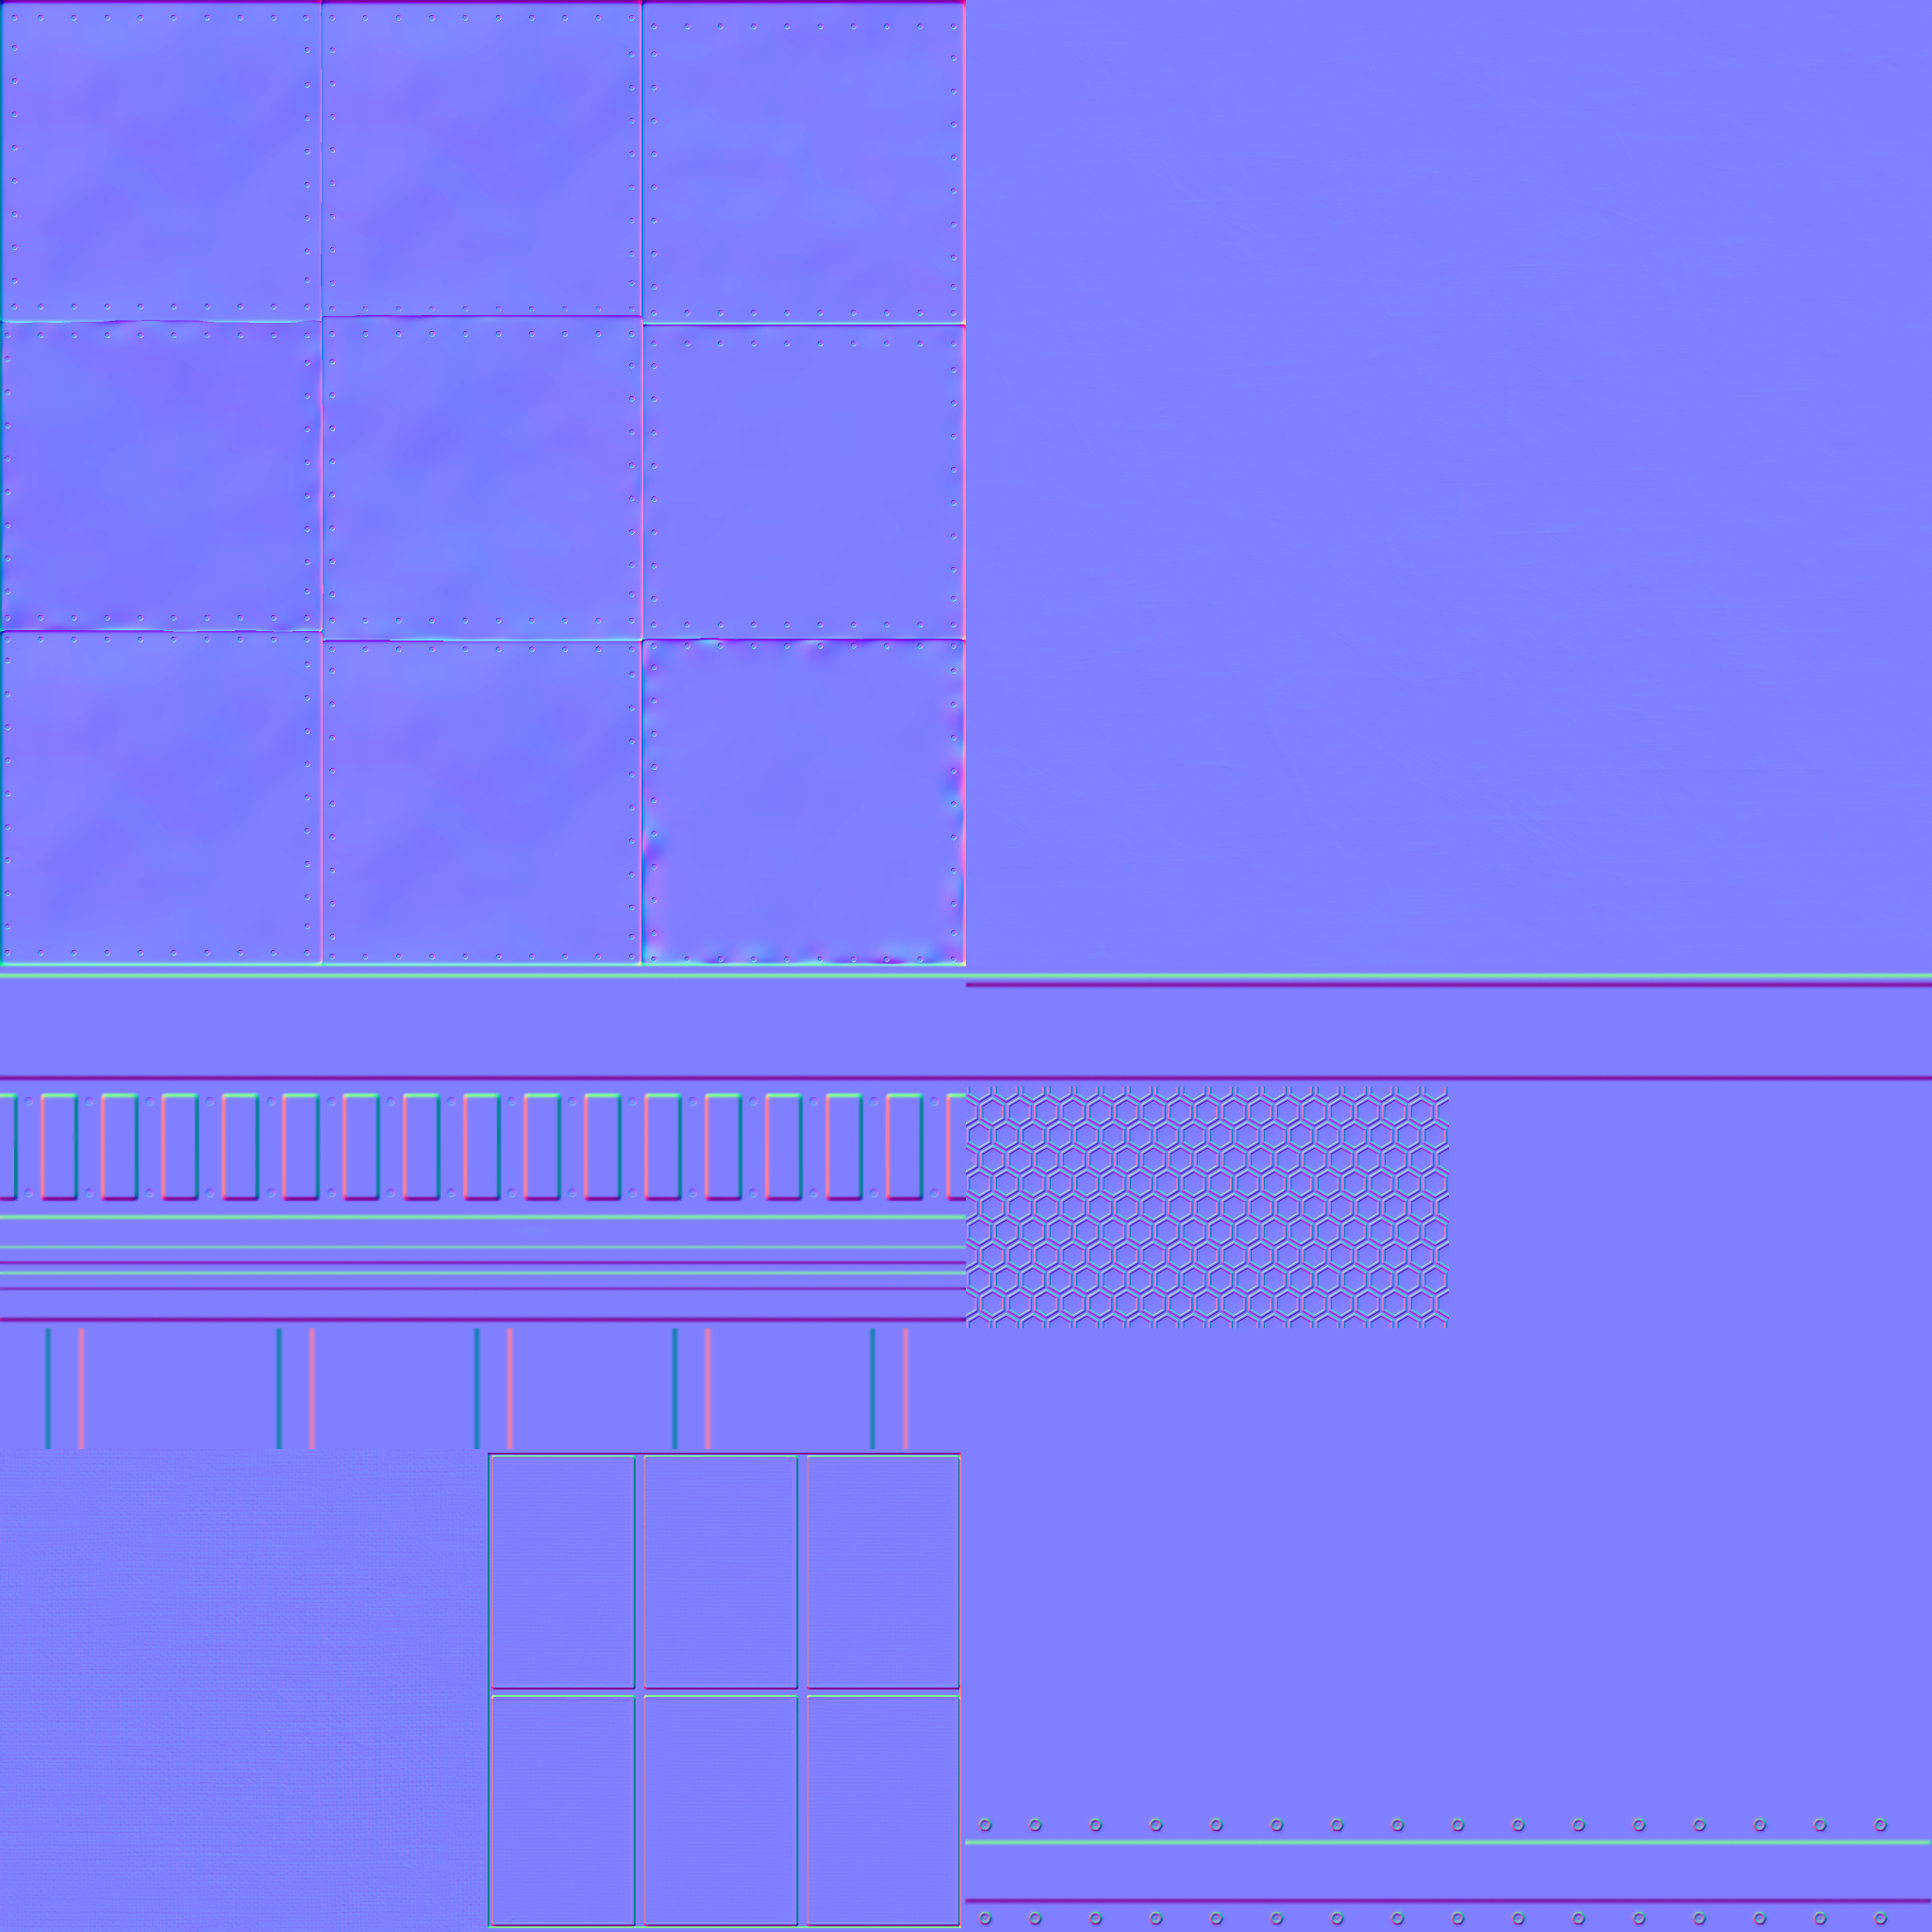 building_03_normal.png